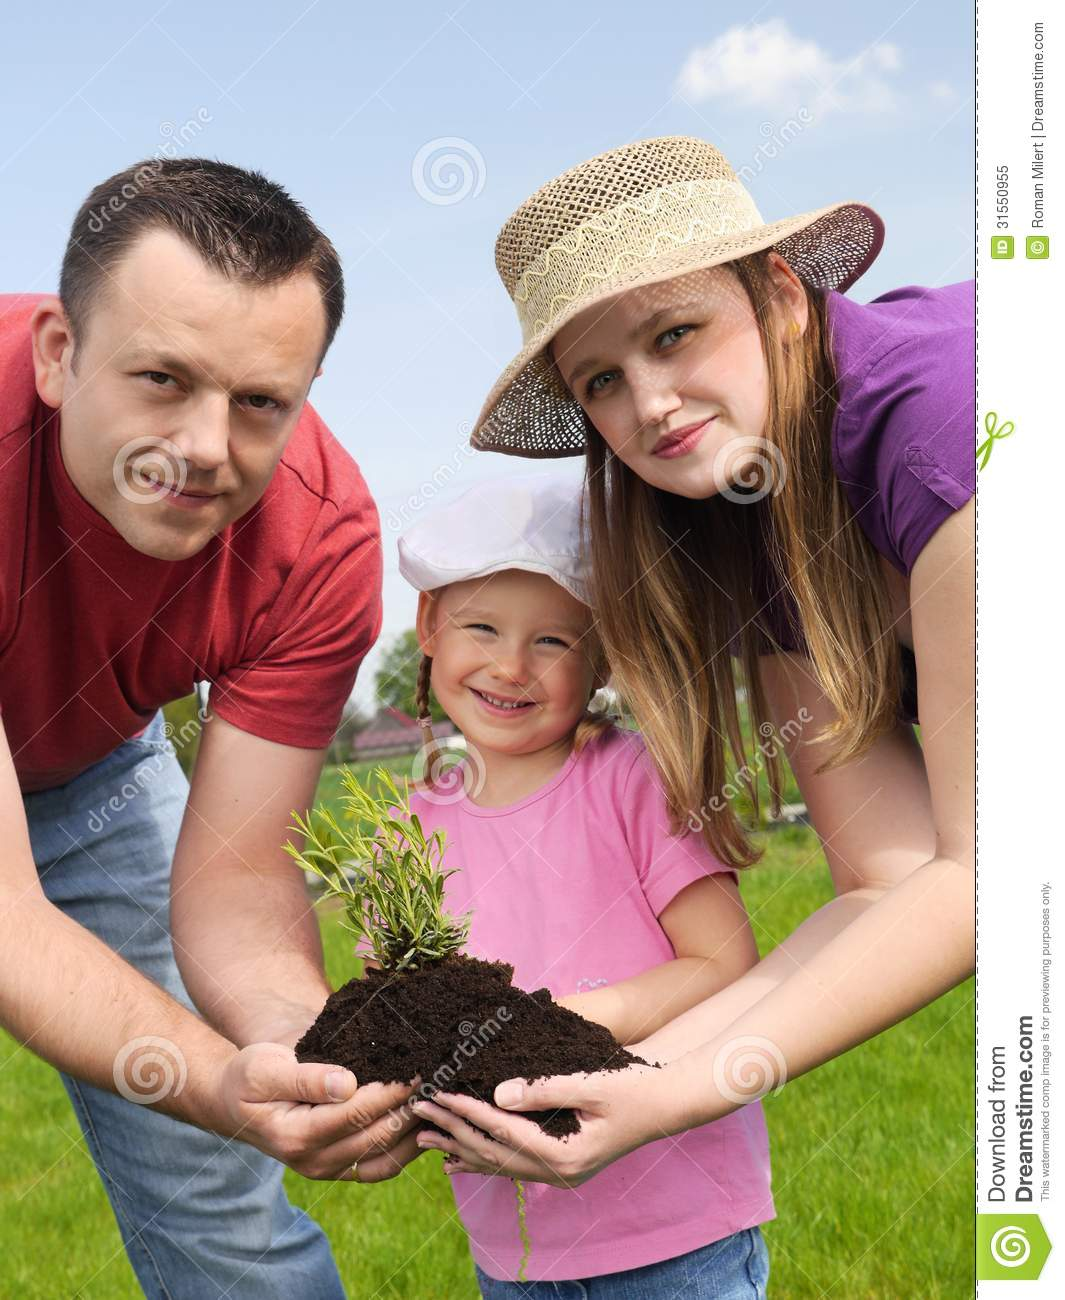 Family Gardening Stock Image. Image Of Daddy, Natural